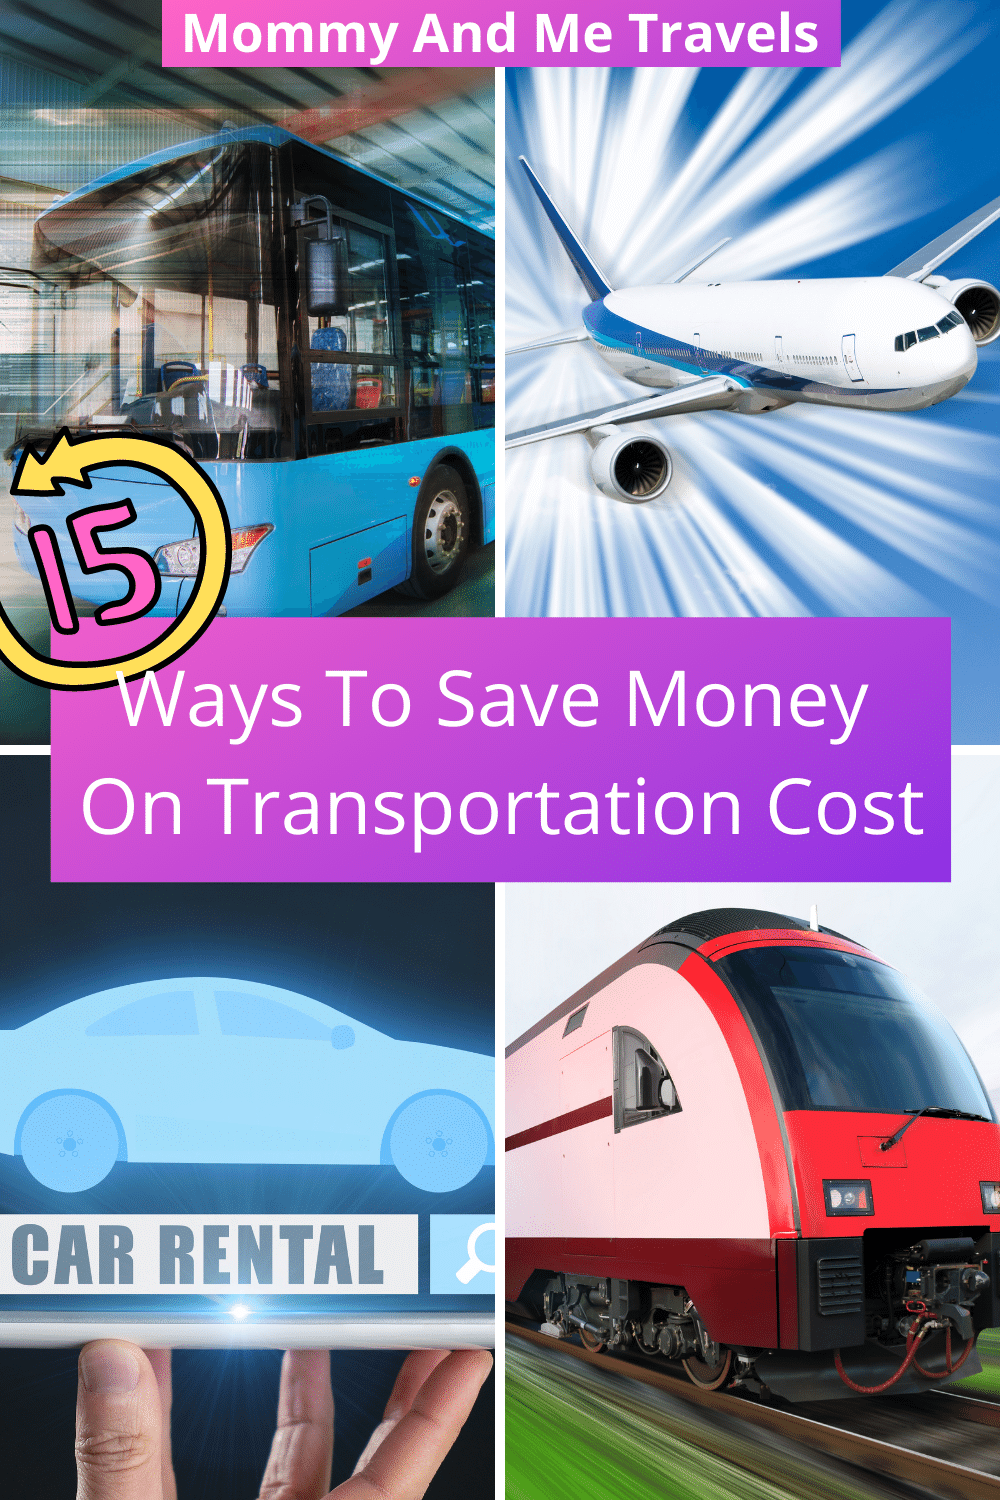 15 Ways For How To Save Money On Transportation Cost For Family Travel